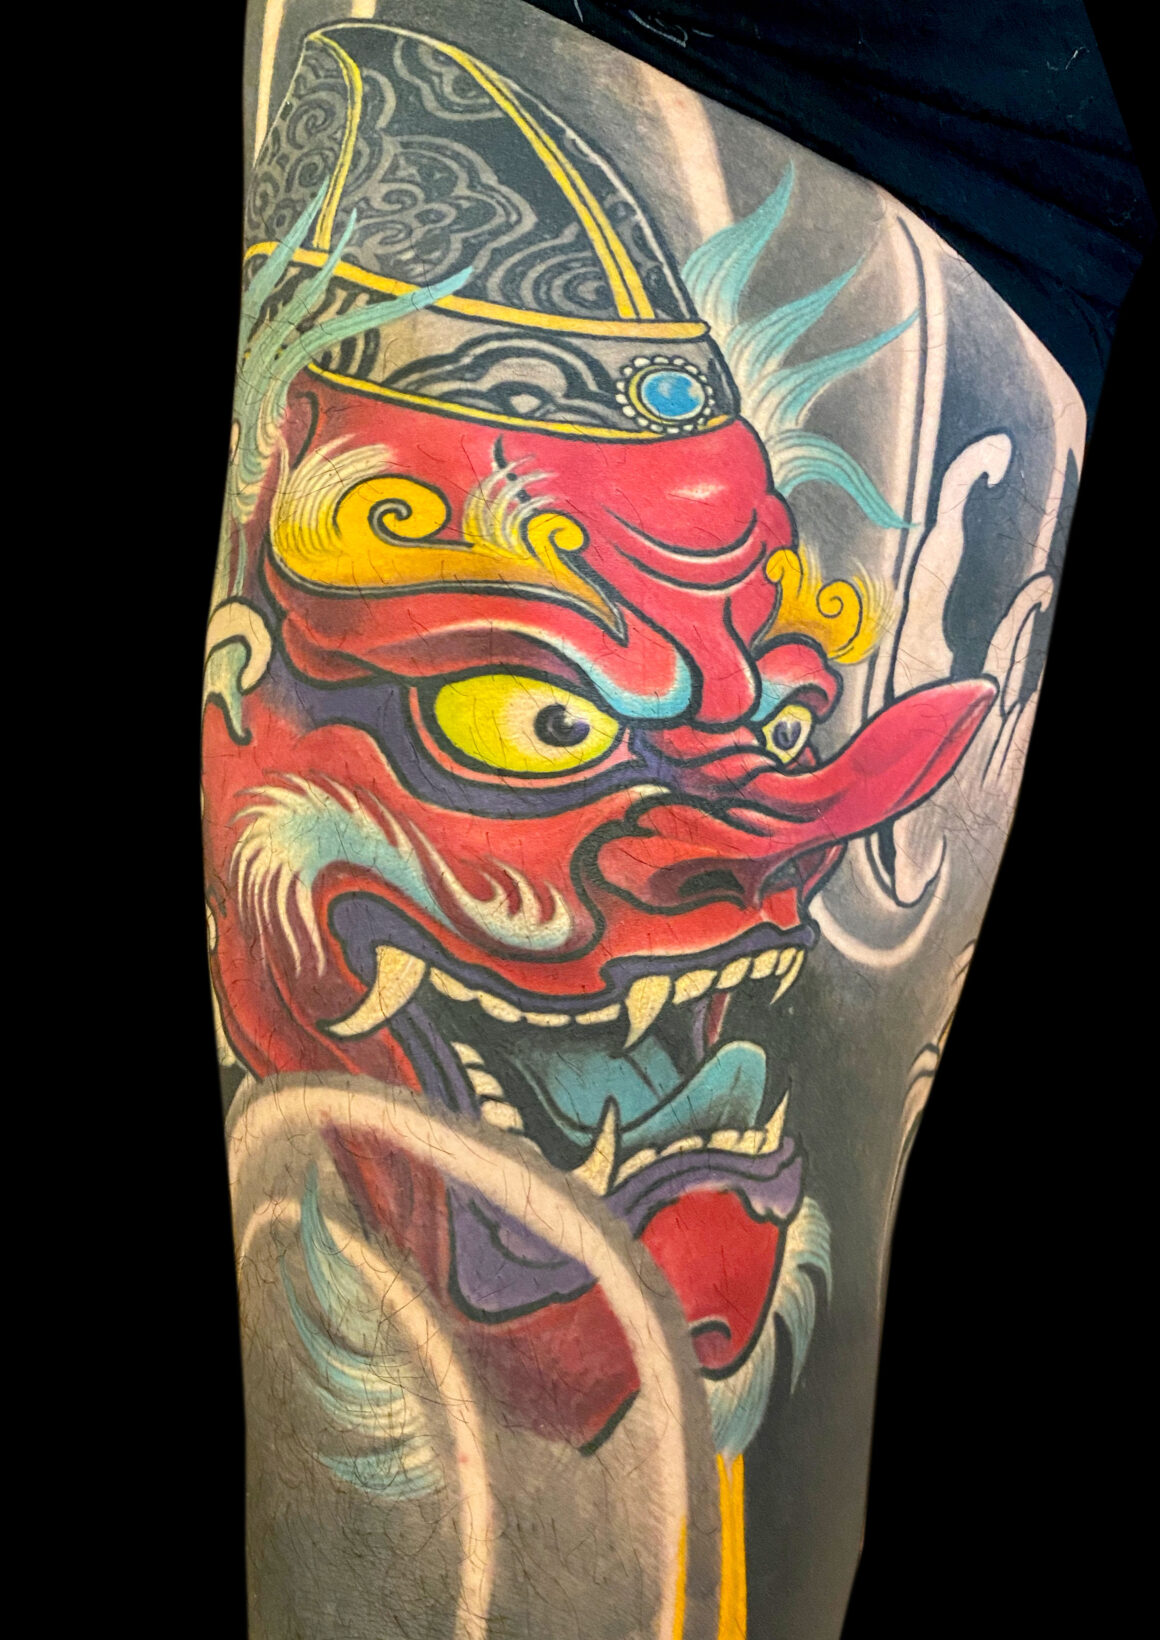 Tattoo by Orient Ching